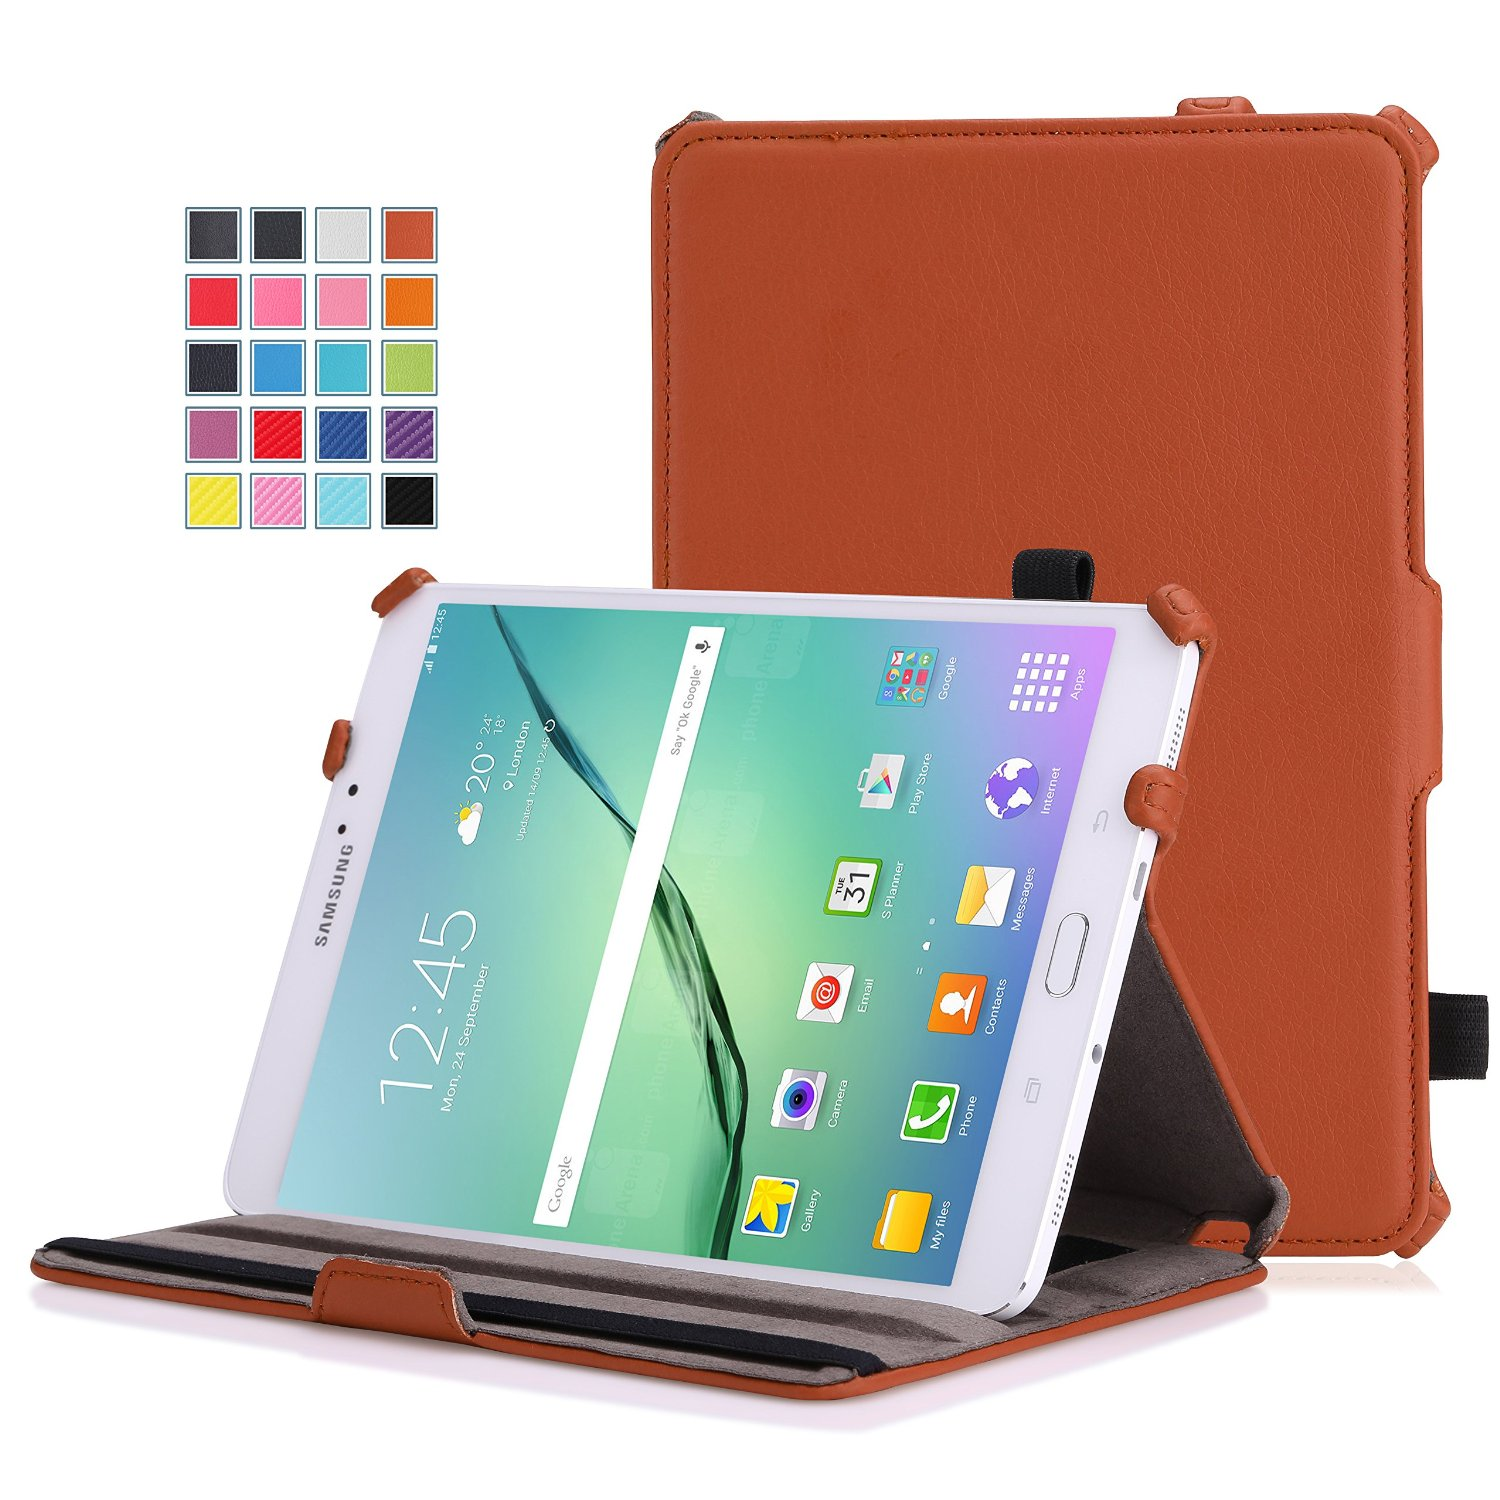 on sale 68263 5911c Top 10 Best Samsung Galaxy Tab S2 Nook Cases And Covers